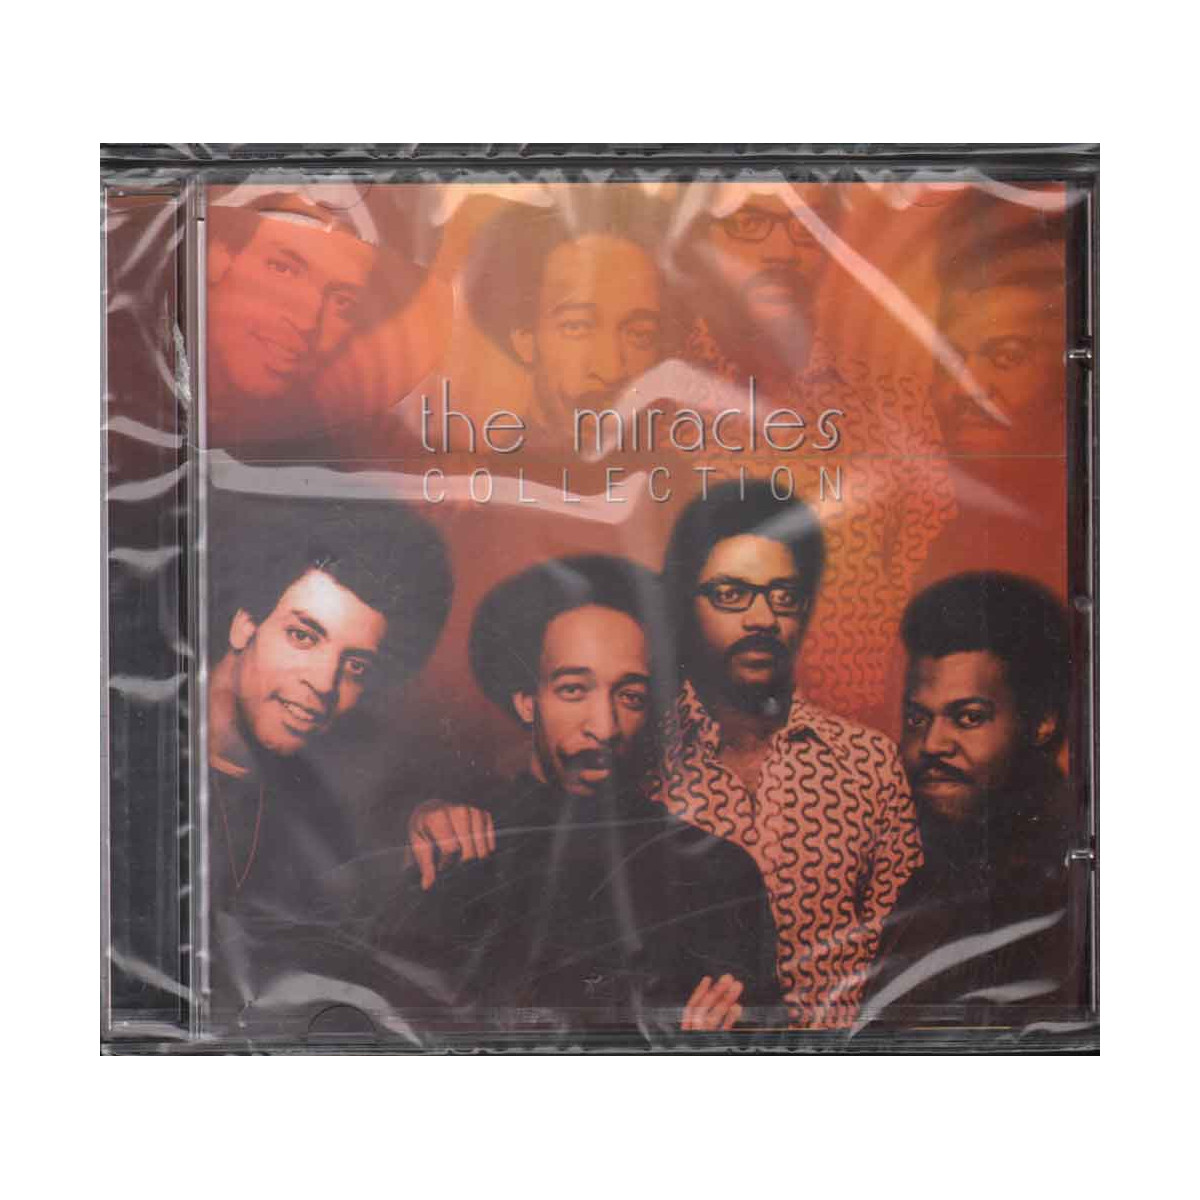 The Miracles CD Collection Nuovo Sigillato 0731454468121